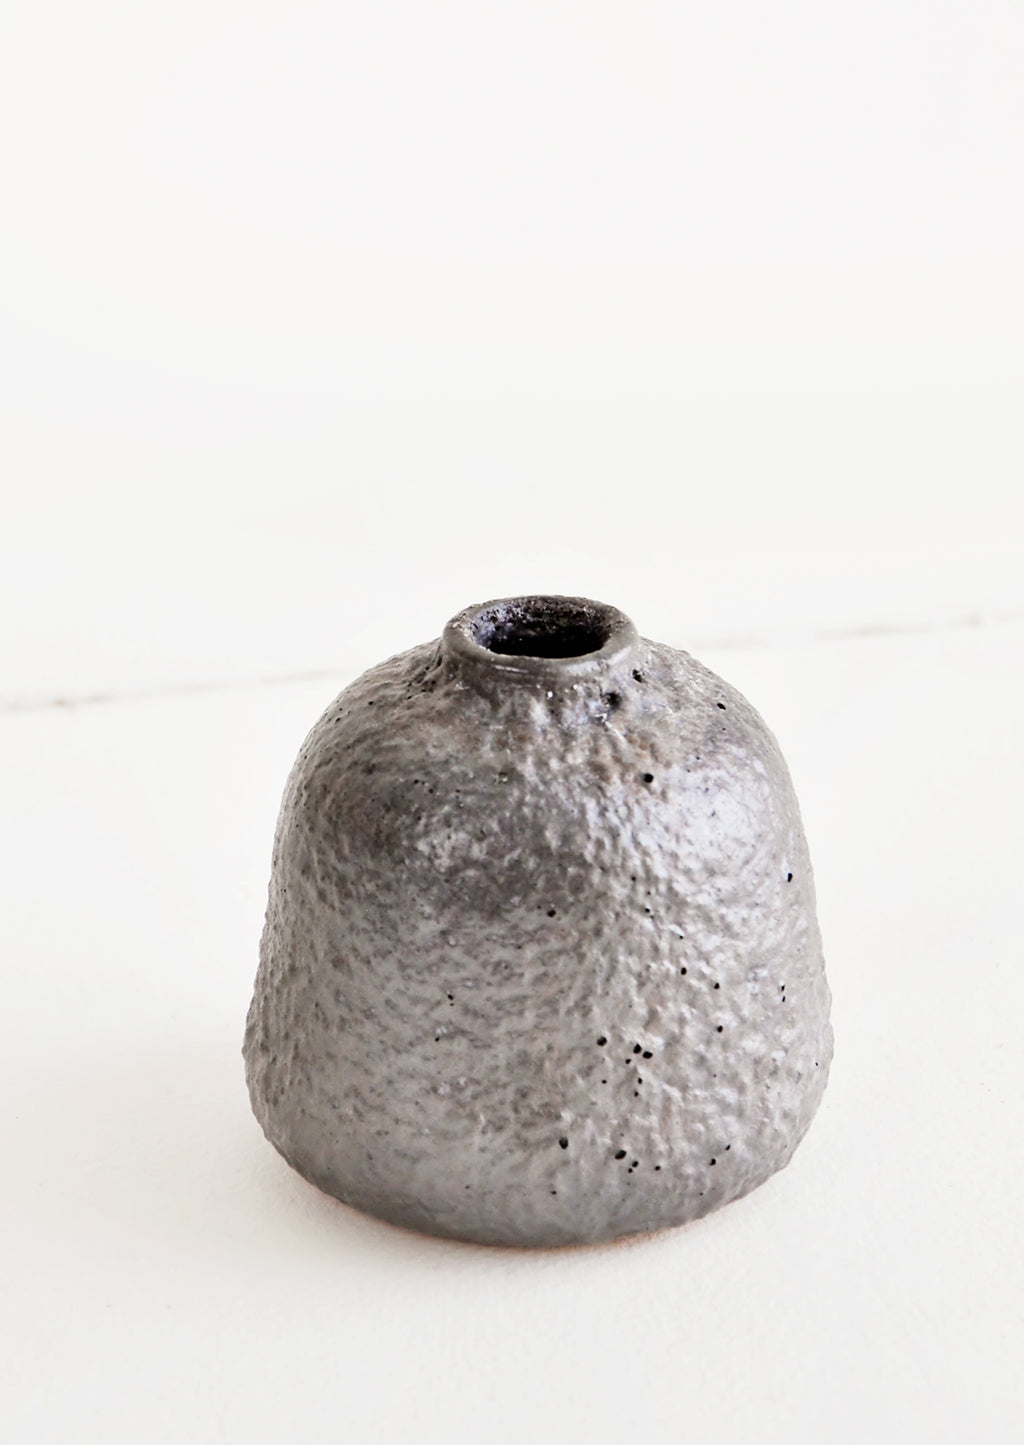 Small / Mercury: Heavily textured, short and wide ceramic bud vase in a metallic, crater-like dark grey glaze